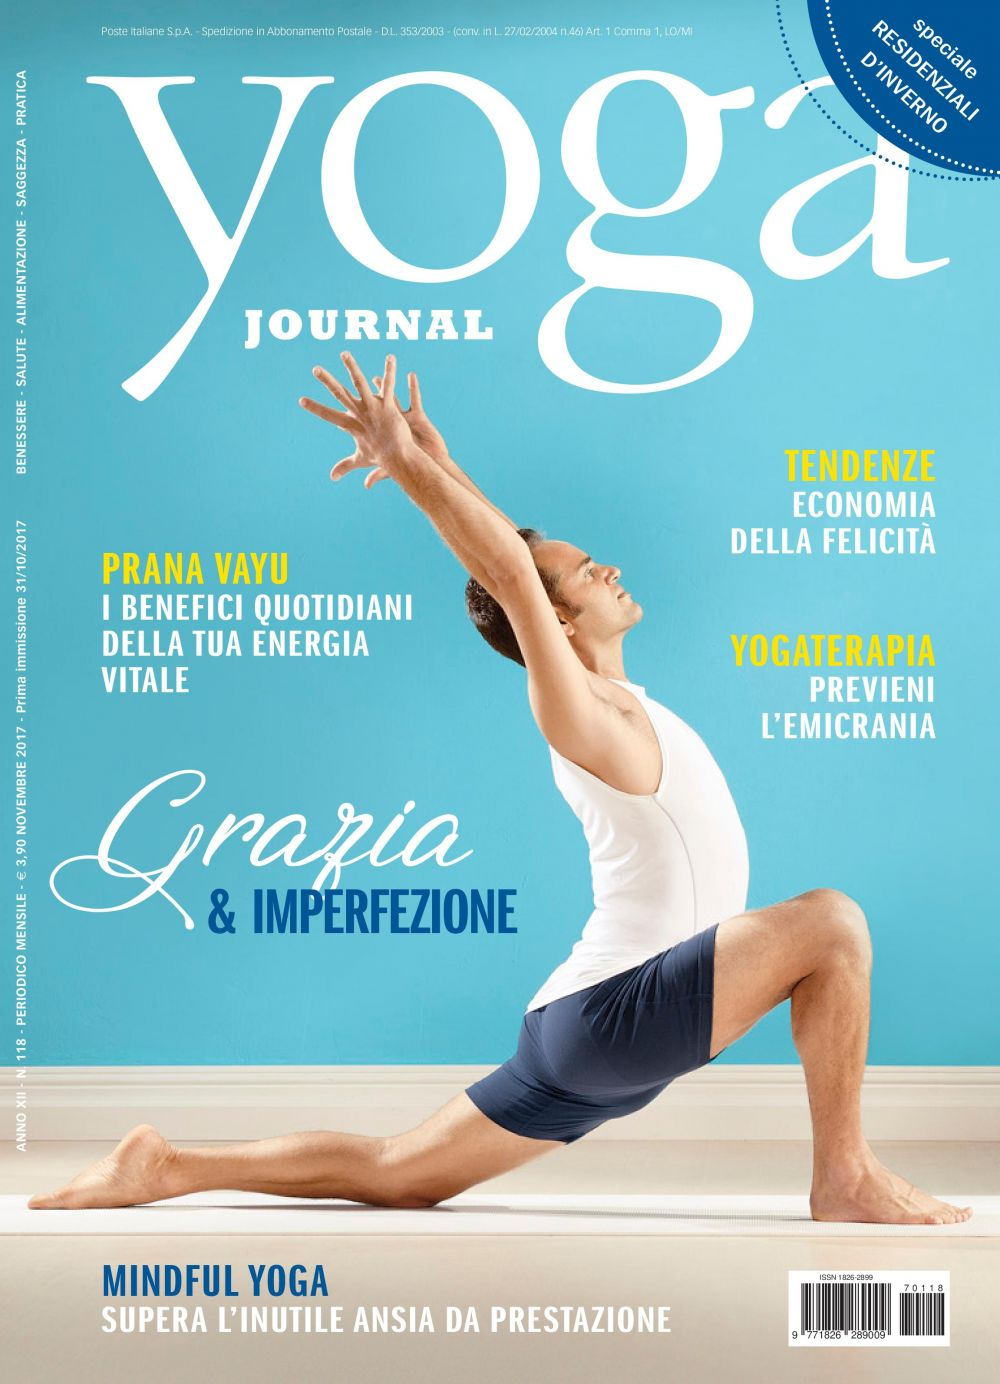 Yoga Journal Novembre n. 118